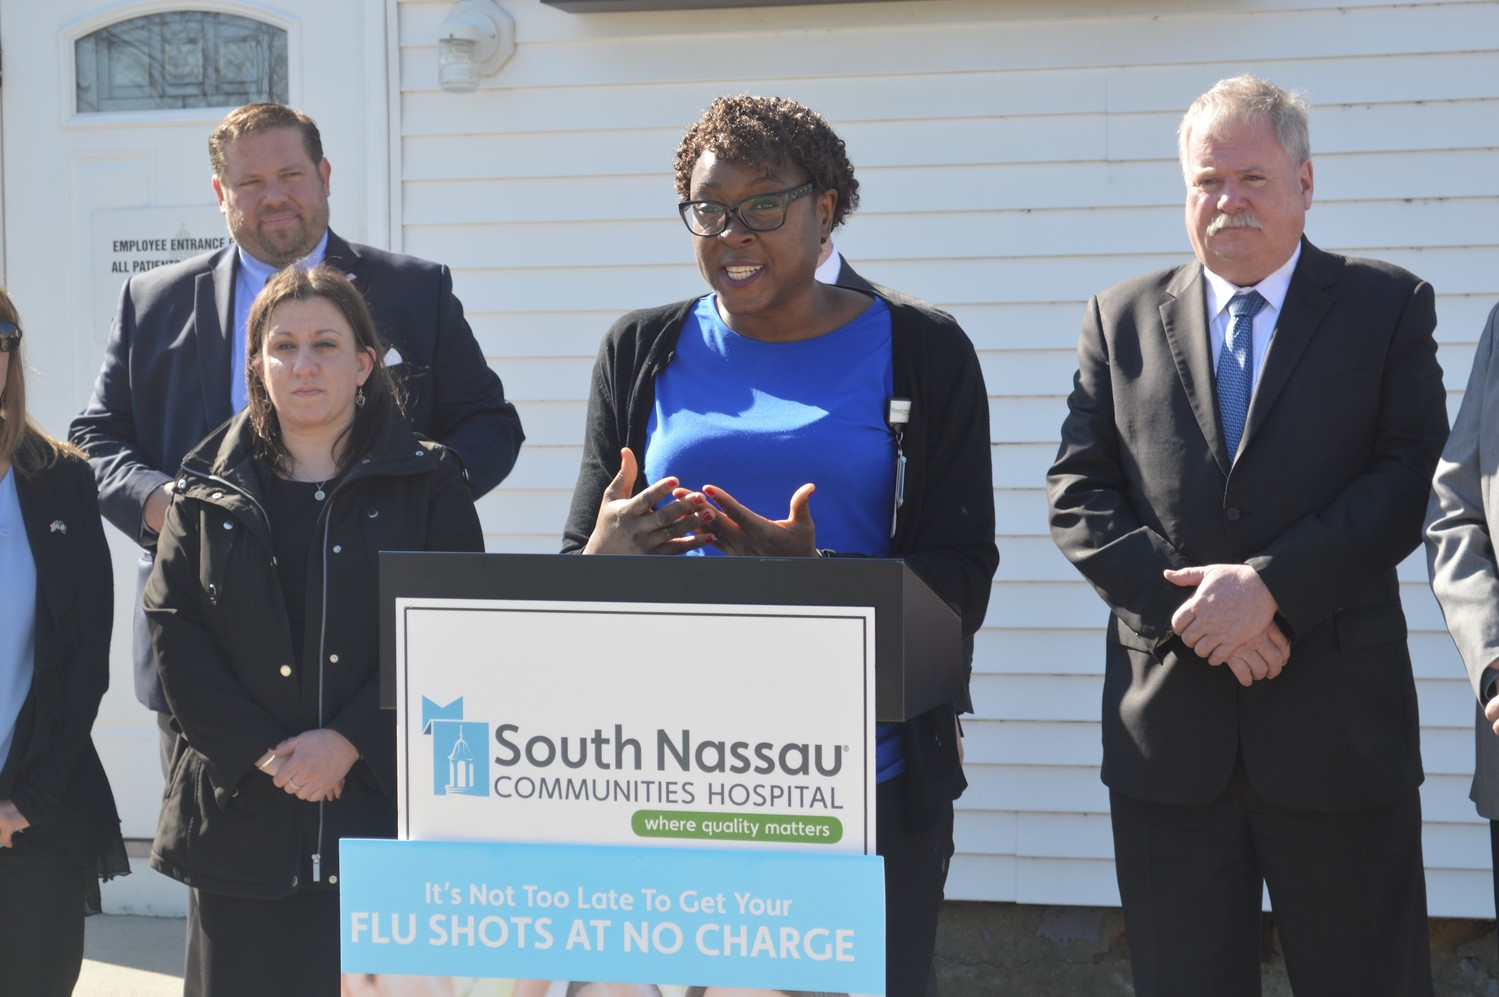 Dr. Joyce Robert, a family medicine physician at South Nassau Communities Hospital, encouraged all residents to get vaccinated at a news conference on Feb 21.